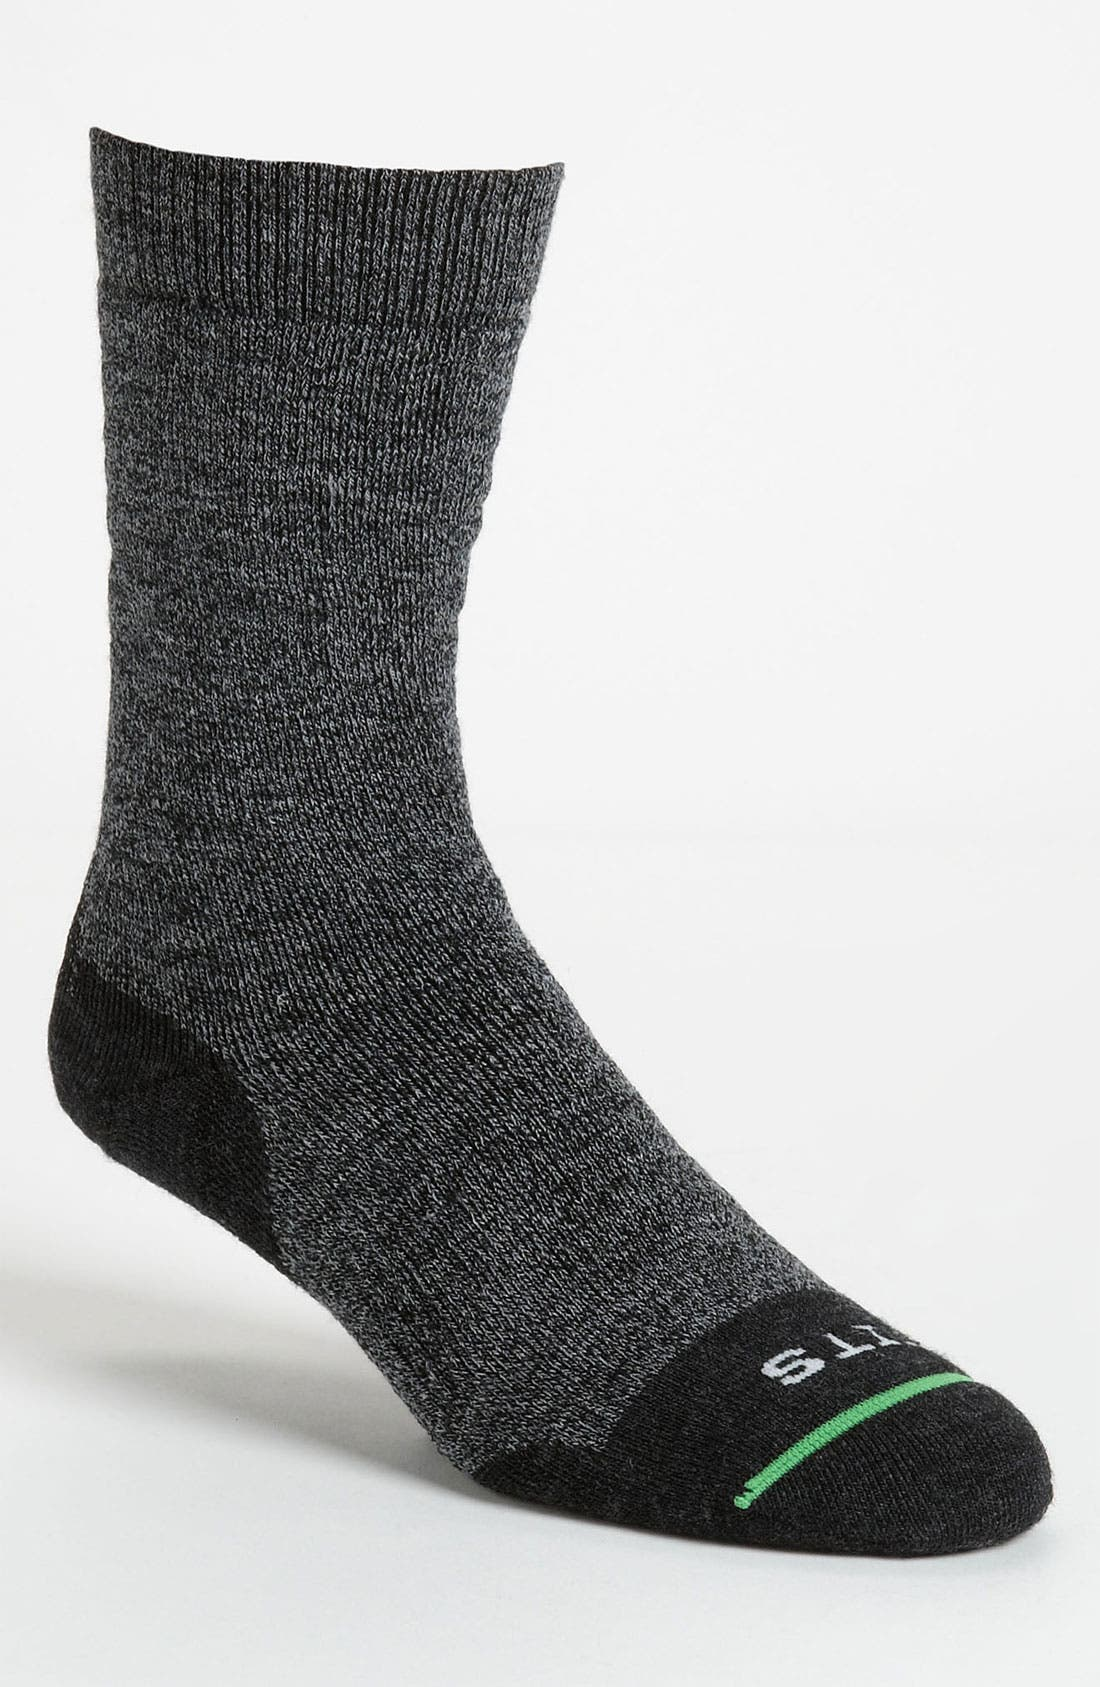 Main Image - FITS Sock Co. 'Nordic' Crew Socks (Online Exclusive)